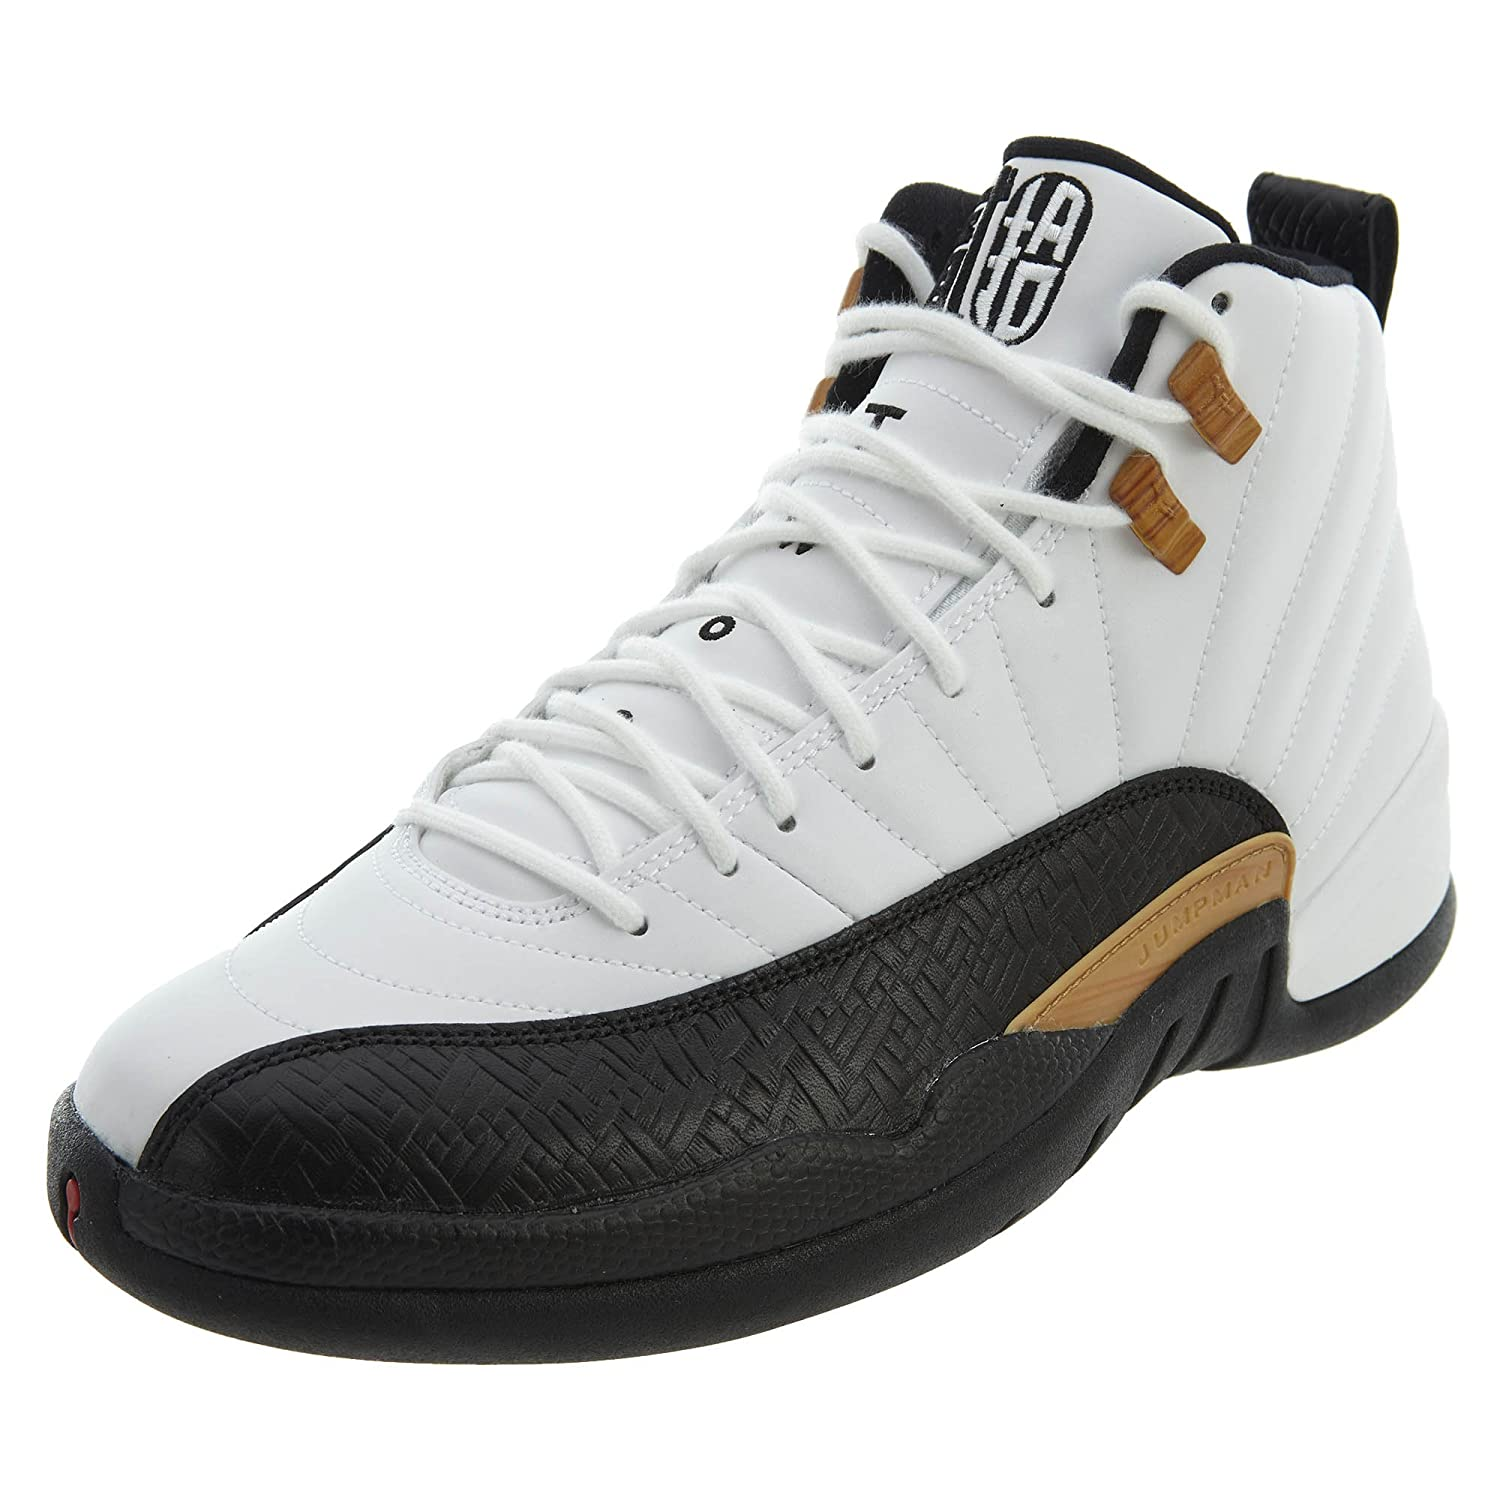 official photos 3b91d 556a2 Amazon.com   Air Jordan 12 Retro CNY